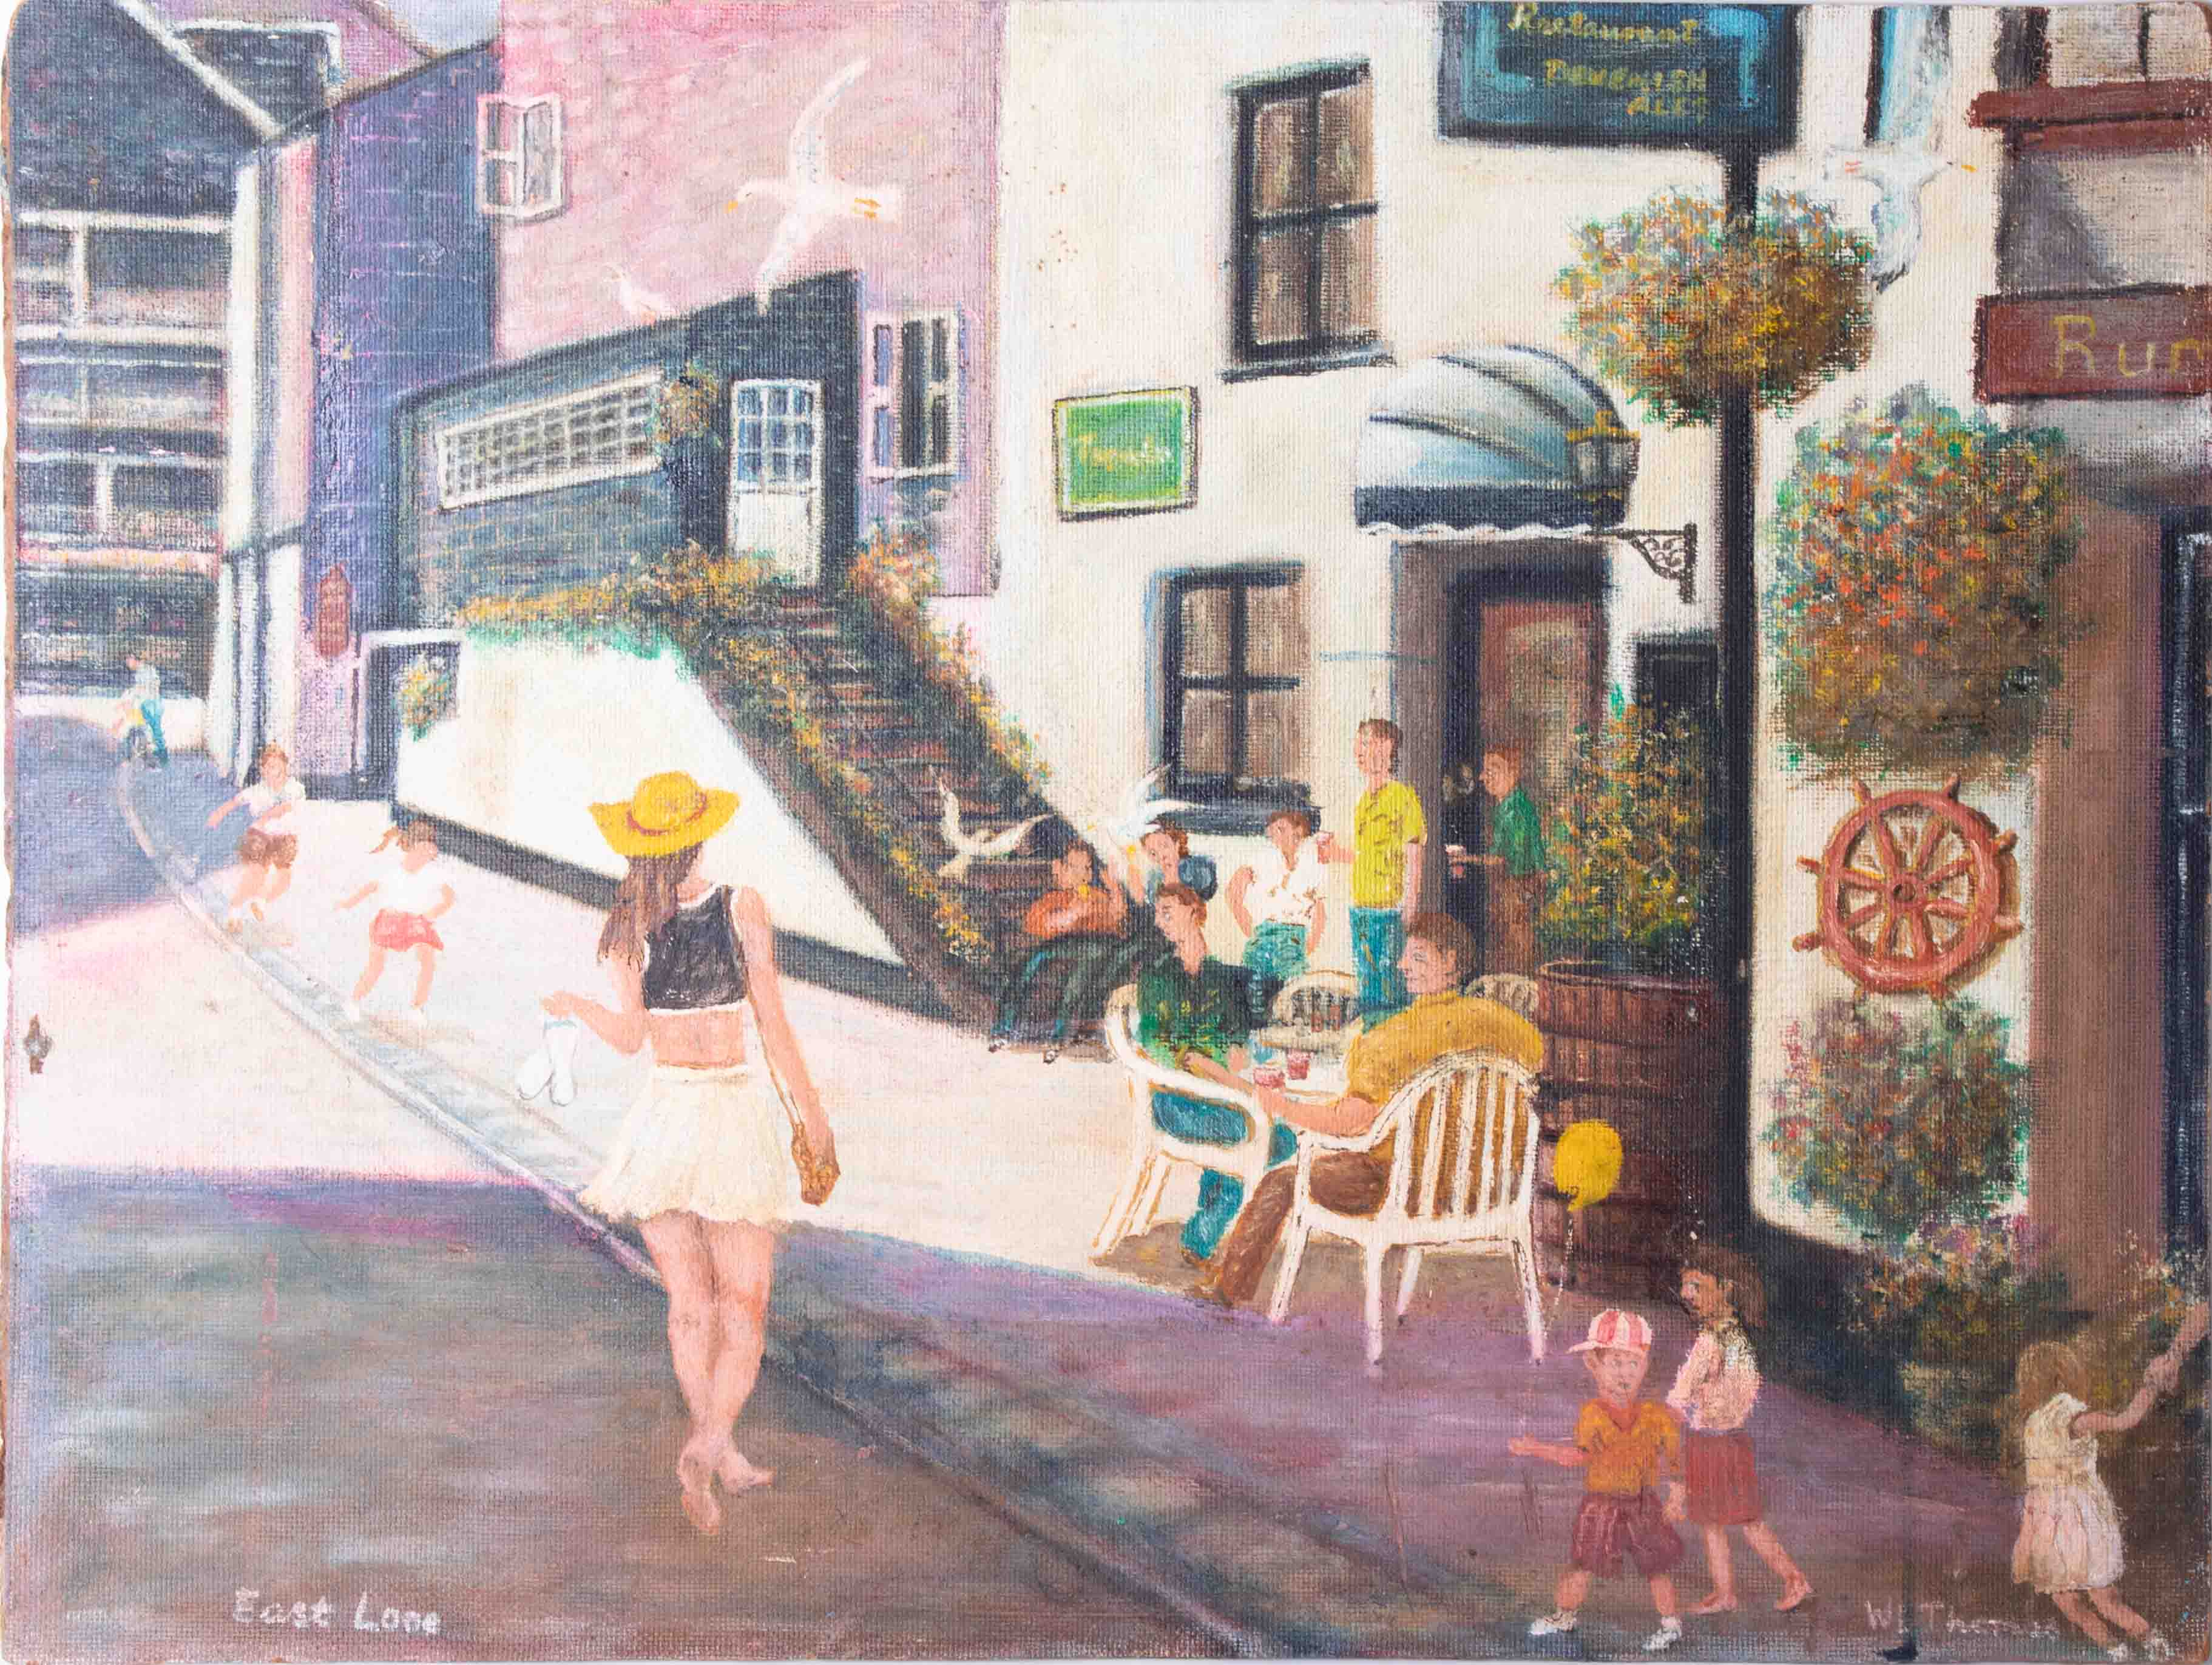 W.L.Thomas, oil on board titled 'Artist On The Steps, Sutton Harbour, Plymouth' also 'Bucky' with - Image 3 of 4